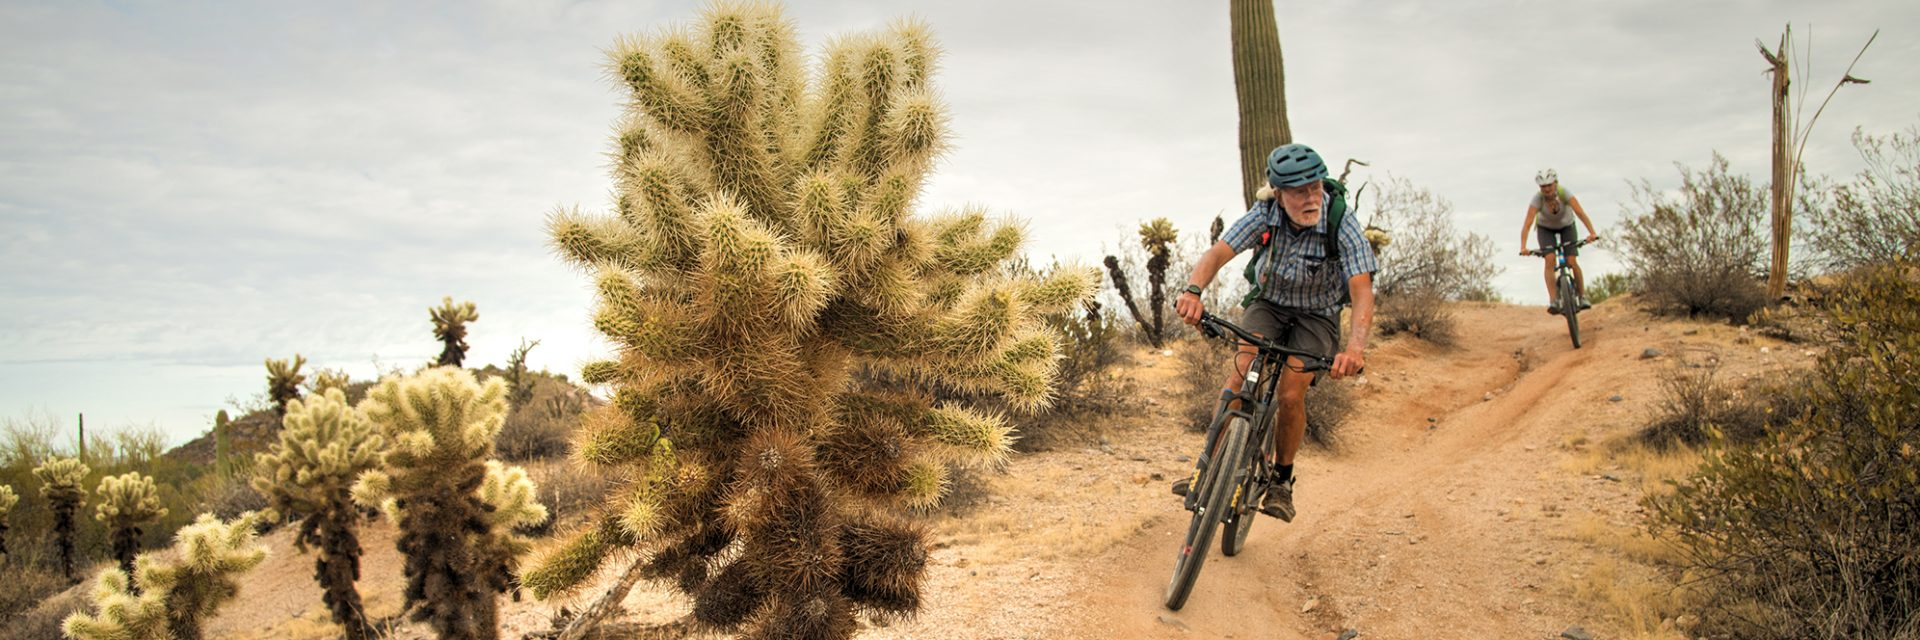 Competitive Track, McDowell Mountain Park, Arizona's Sonoran Desert guided mtb tour near Phoenix, AZ